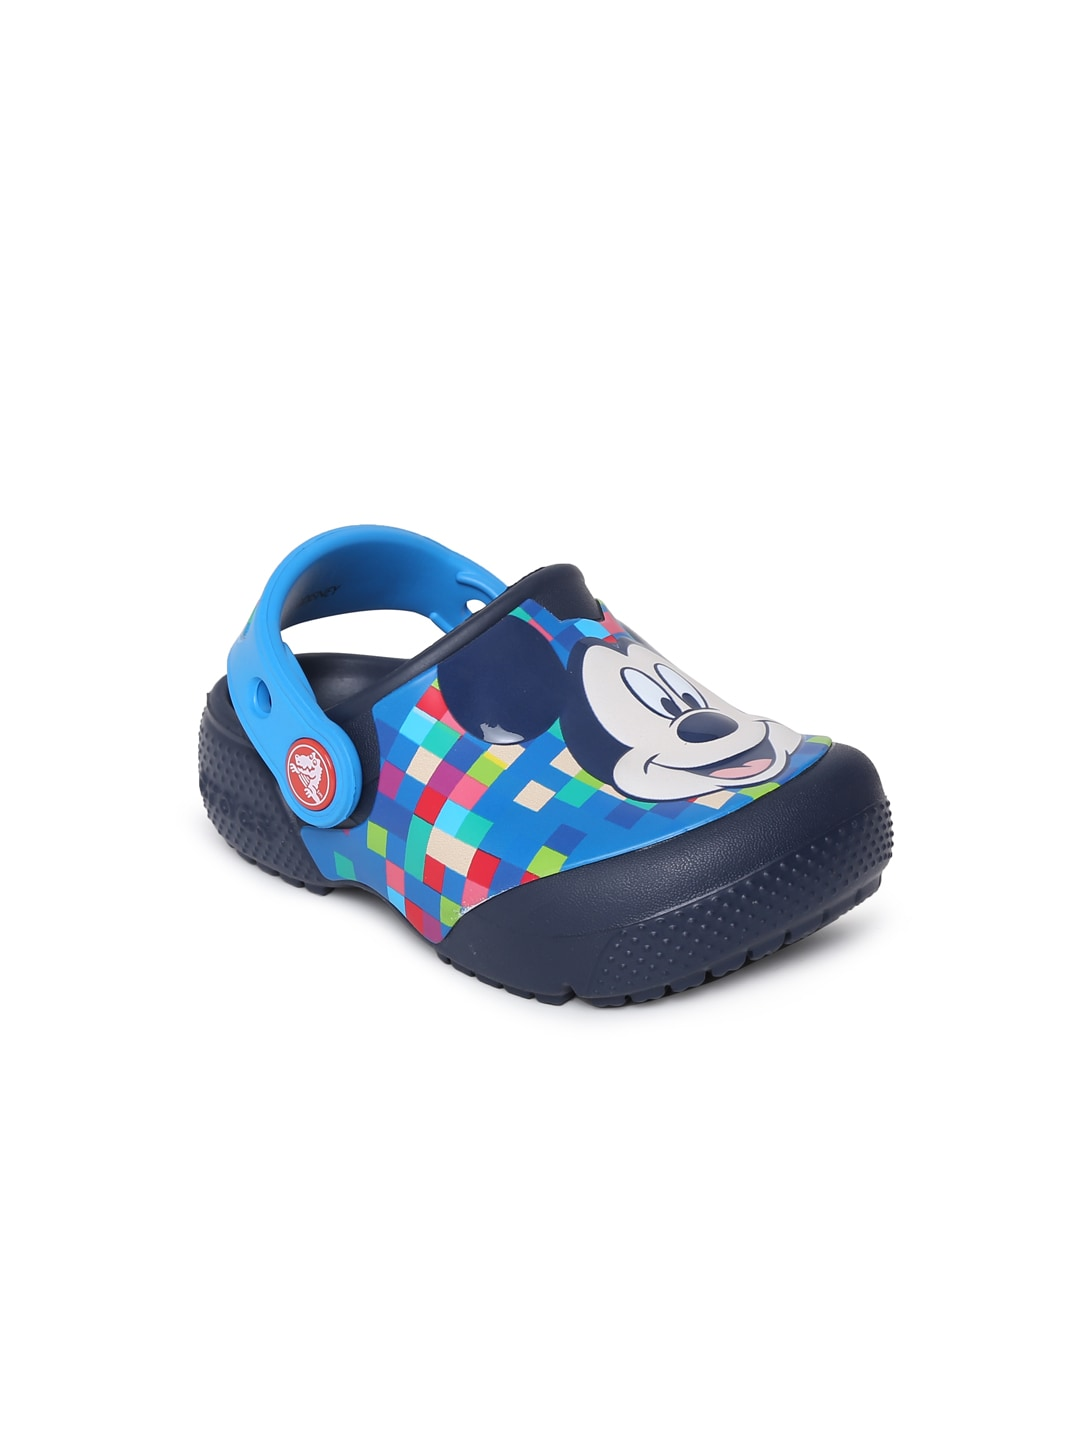 Crocs Unisex Blue FunLab Mickey Printed Clogs image